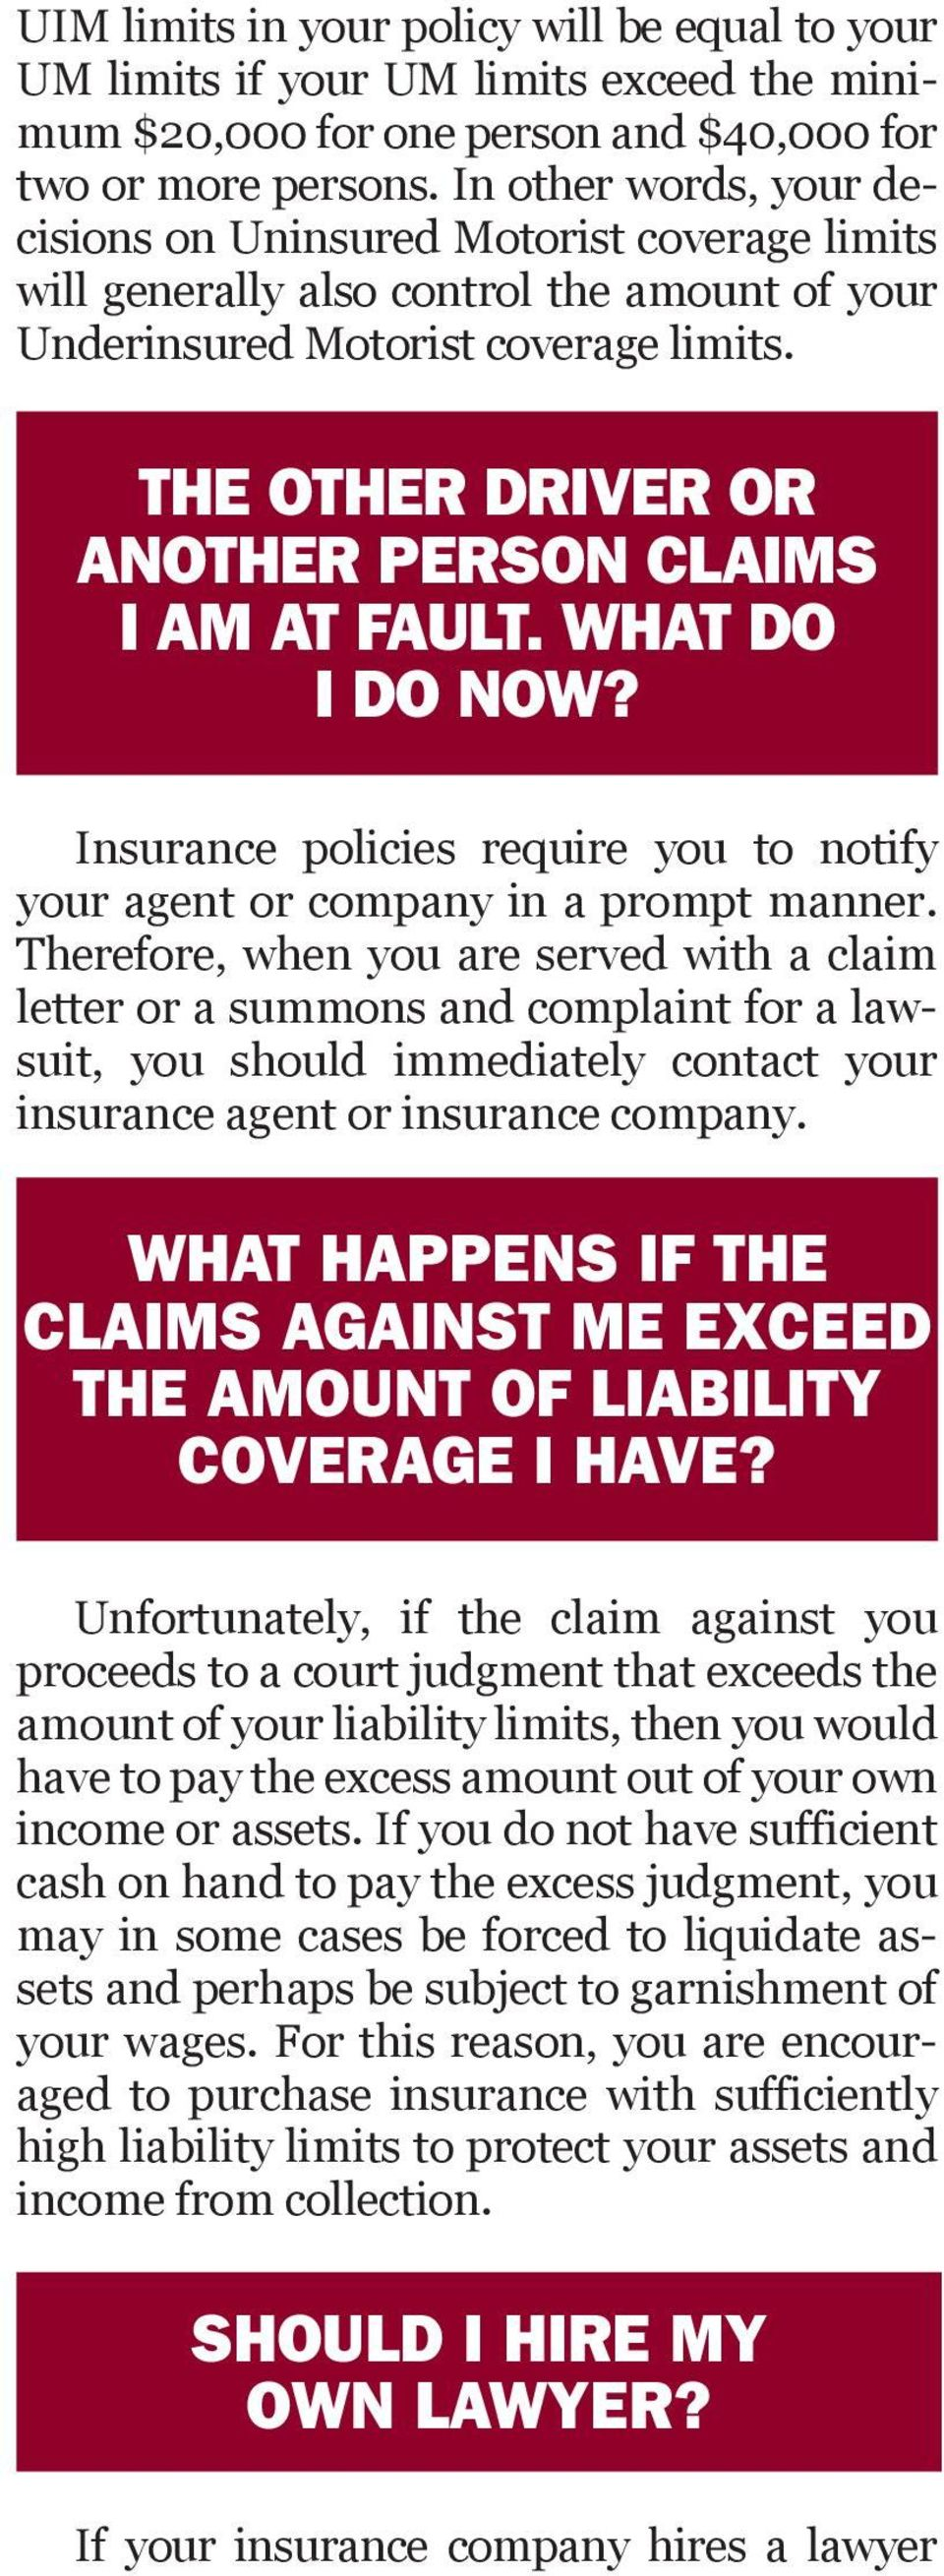 the other driver or another person claims I am at fault. what do i do now? Insurance policies require you to notify your agent or company in a prompt manner.